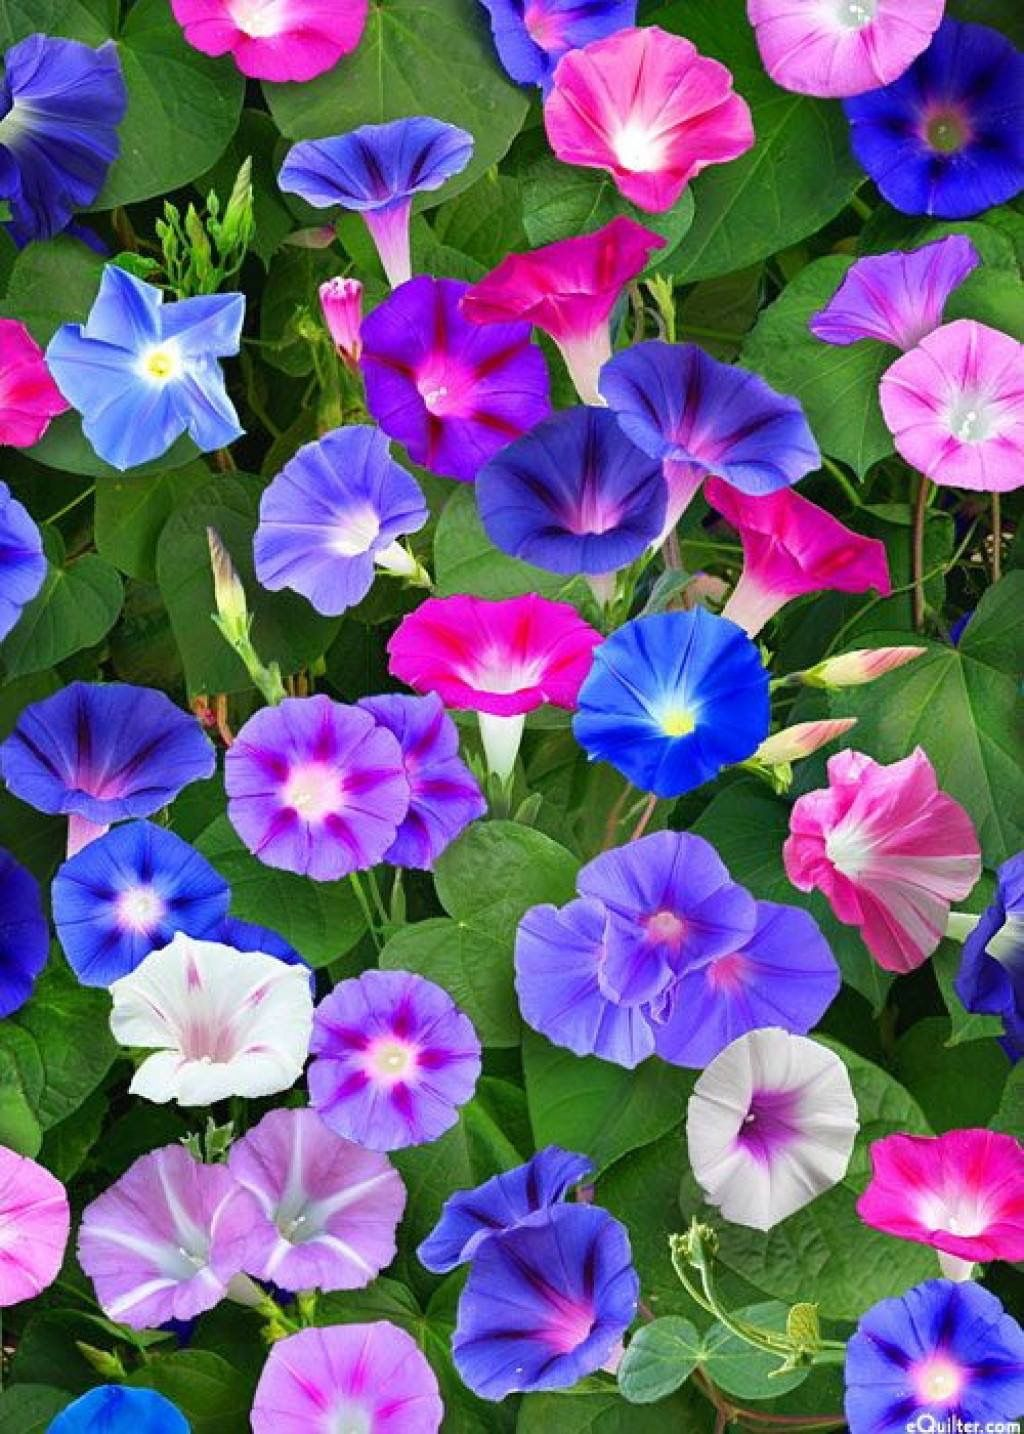 Morning Glories Ipomoea Purpurea Morning Glory Flowers Beautiful Flowers Flowers Nature